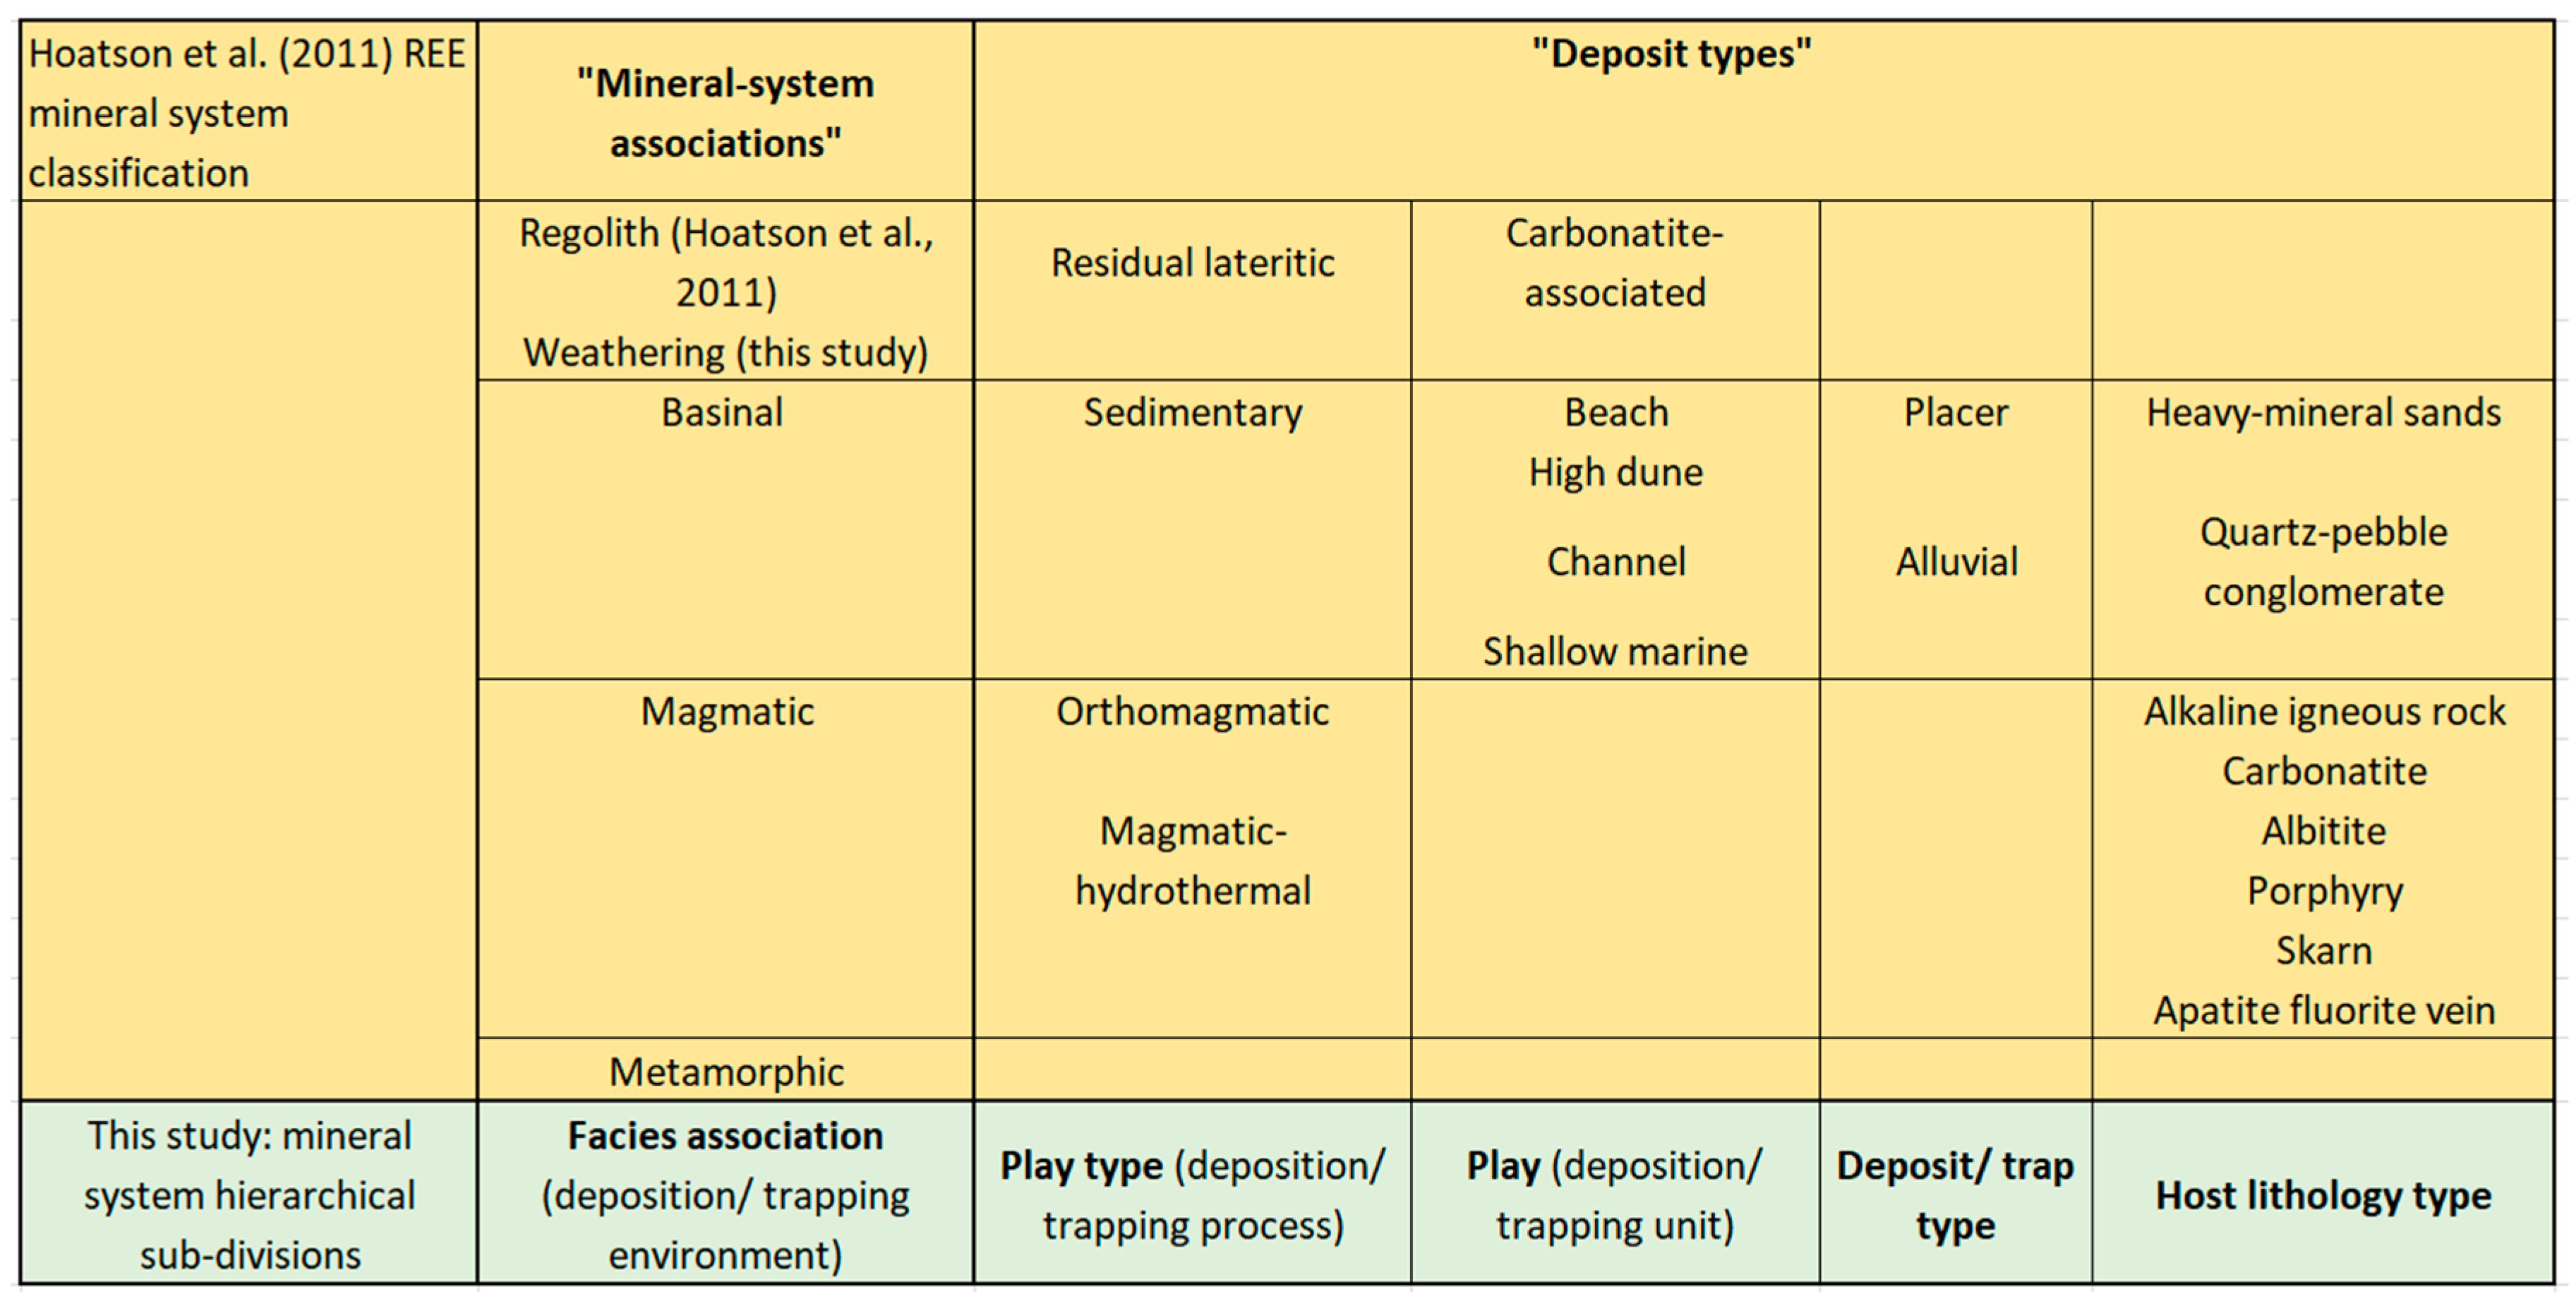 Minerals | Free Full-Text | A Workflow to Define, Map and ... on rock texture concept map, geologic time scale concept map, rock cycle concept map, groundwater concept map, sedimentary rock concept map, geology concept map, gas concept map, vein concept map, types of rocks concept map, quartz concept map, fracture concept map, ion concept map, landform concept map, ionic compound concept map, composition concept map, pangaea concept map, crystal system concept map, magma concept map, pressure concept map, lava concept map,